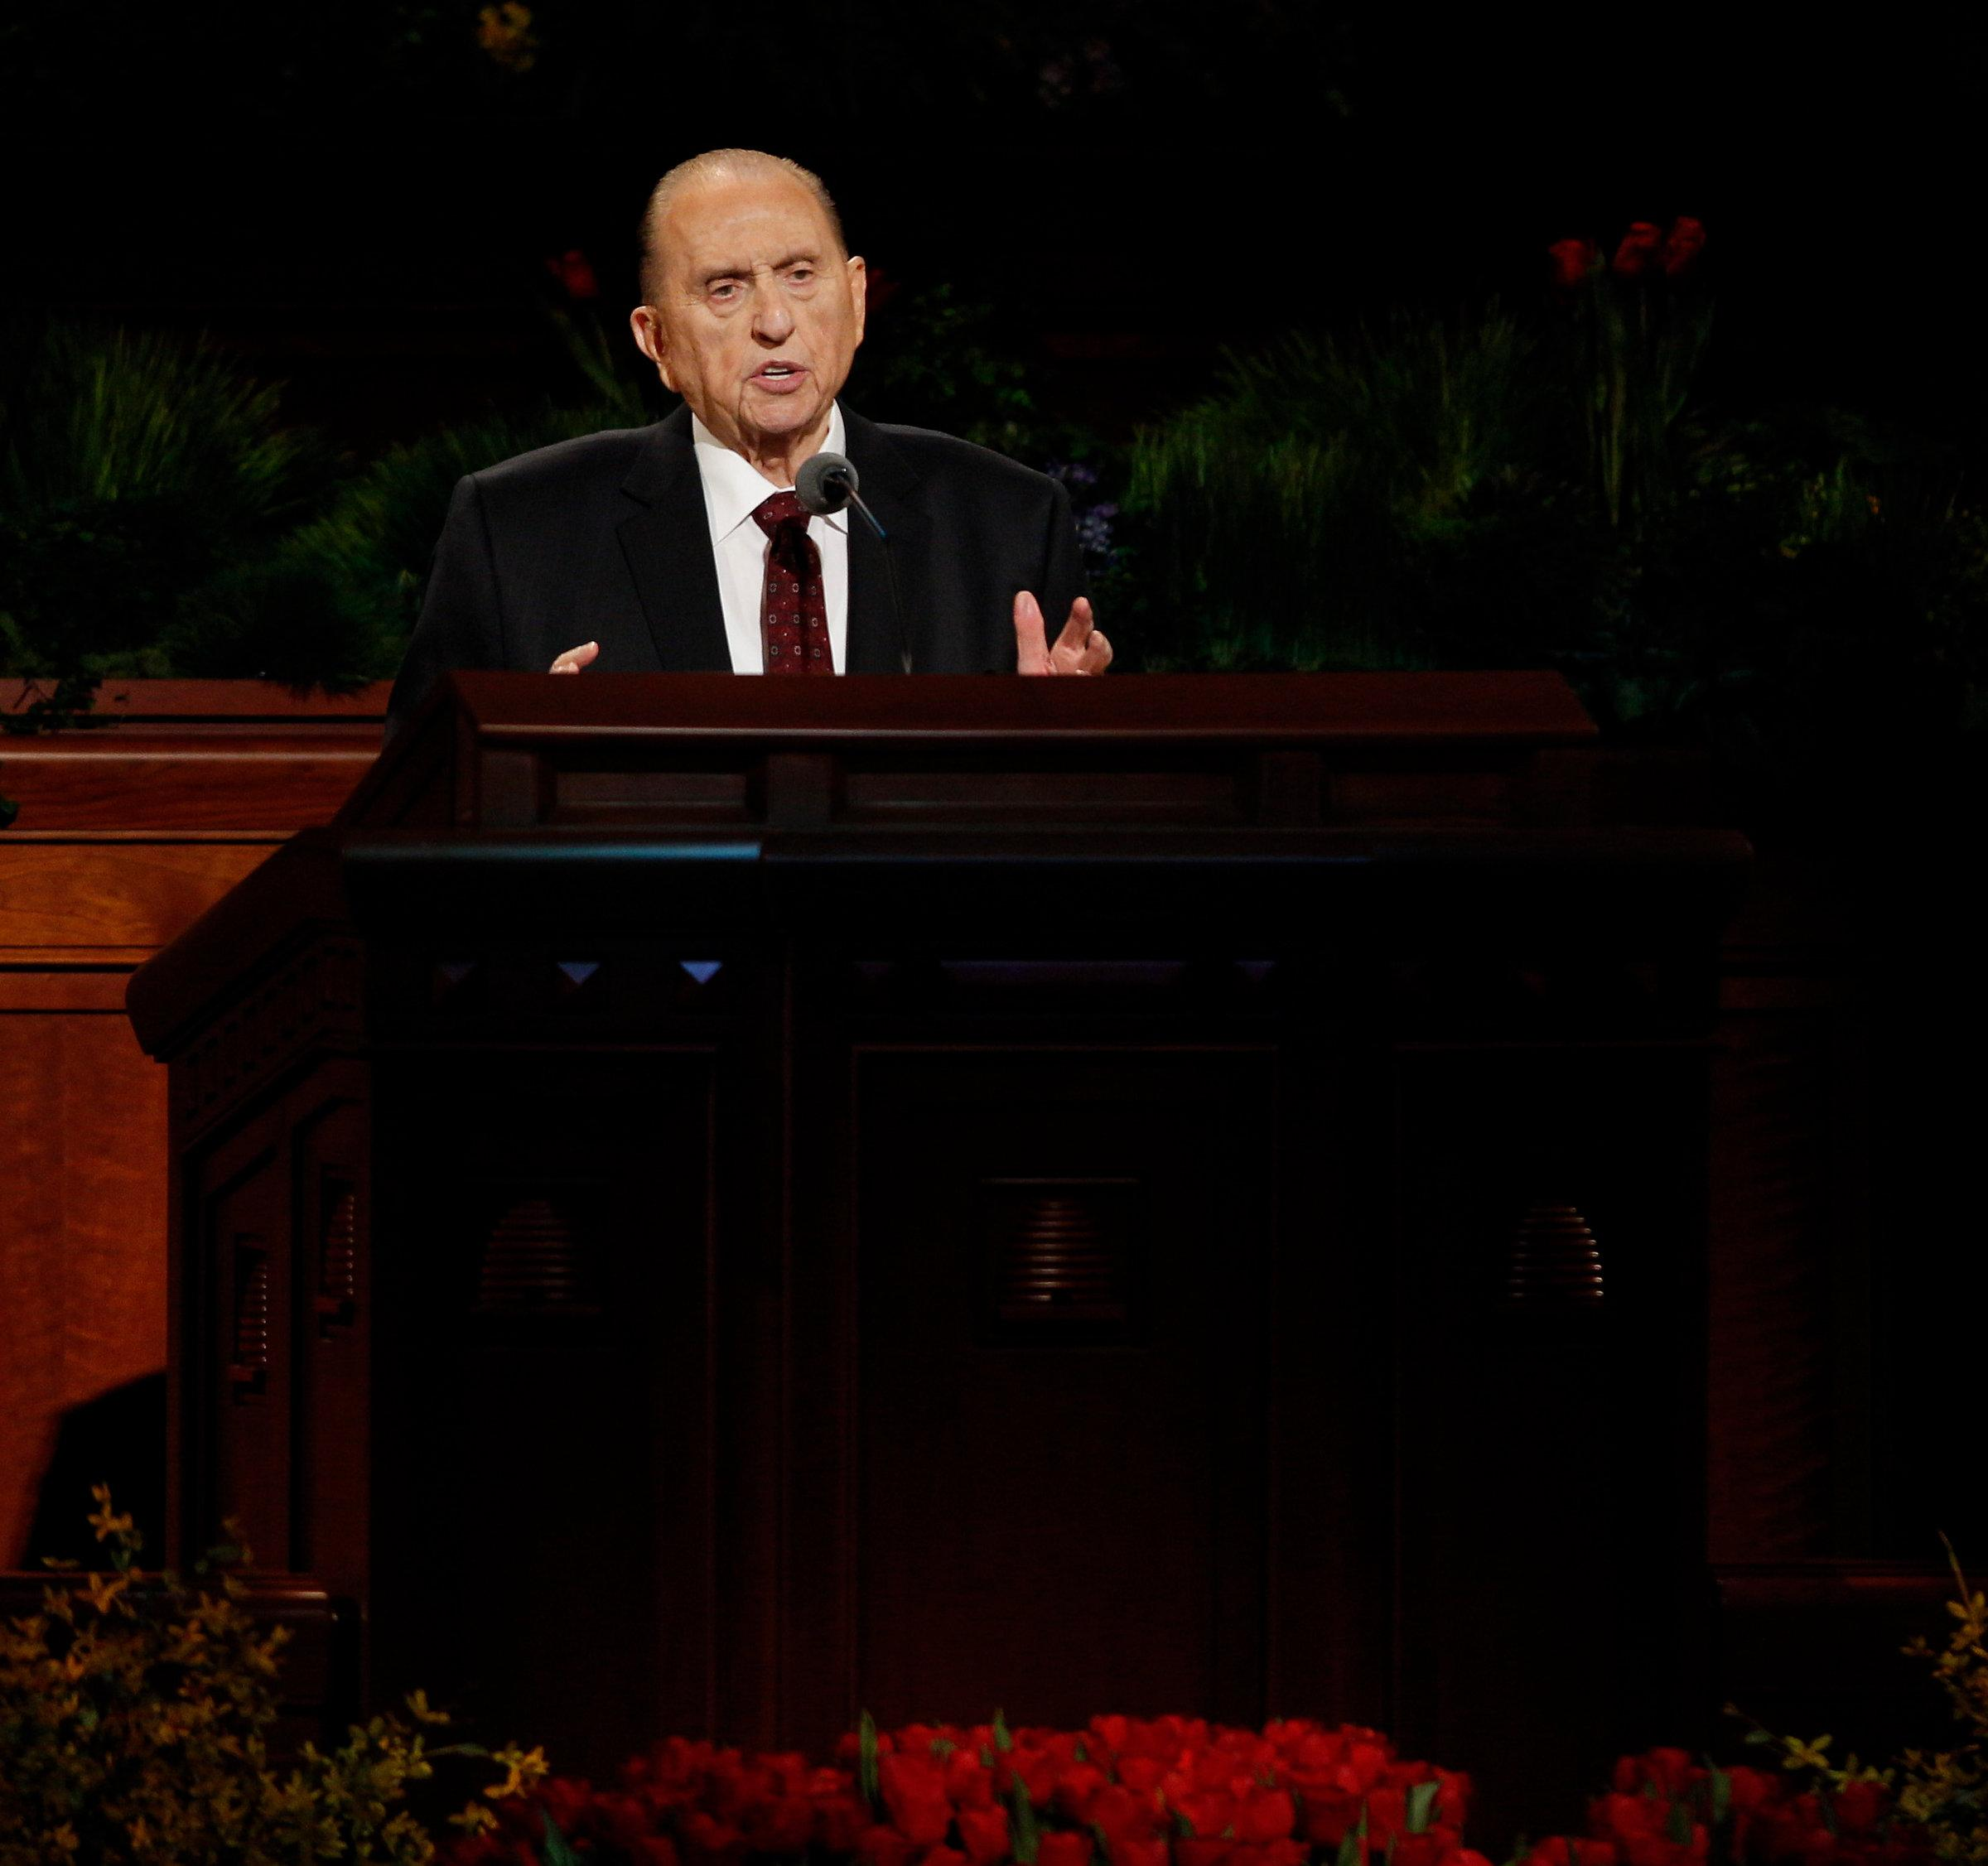 President Thomas S. Monson speaks during the 185th annual general conference of the Church in April 2015. (Photo: MormonNewsroom.org)<p></p>